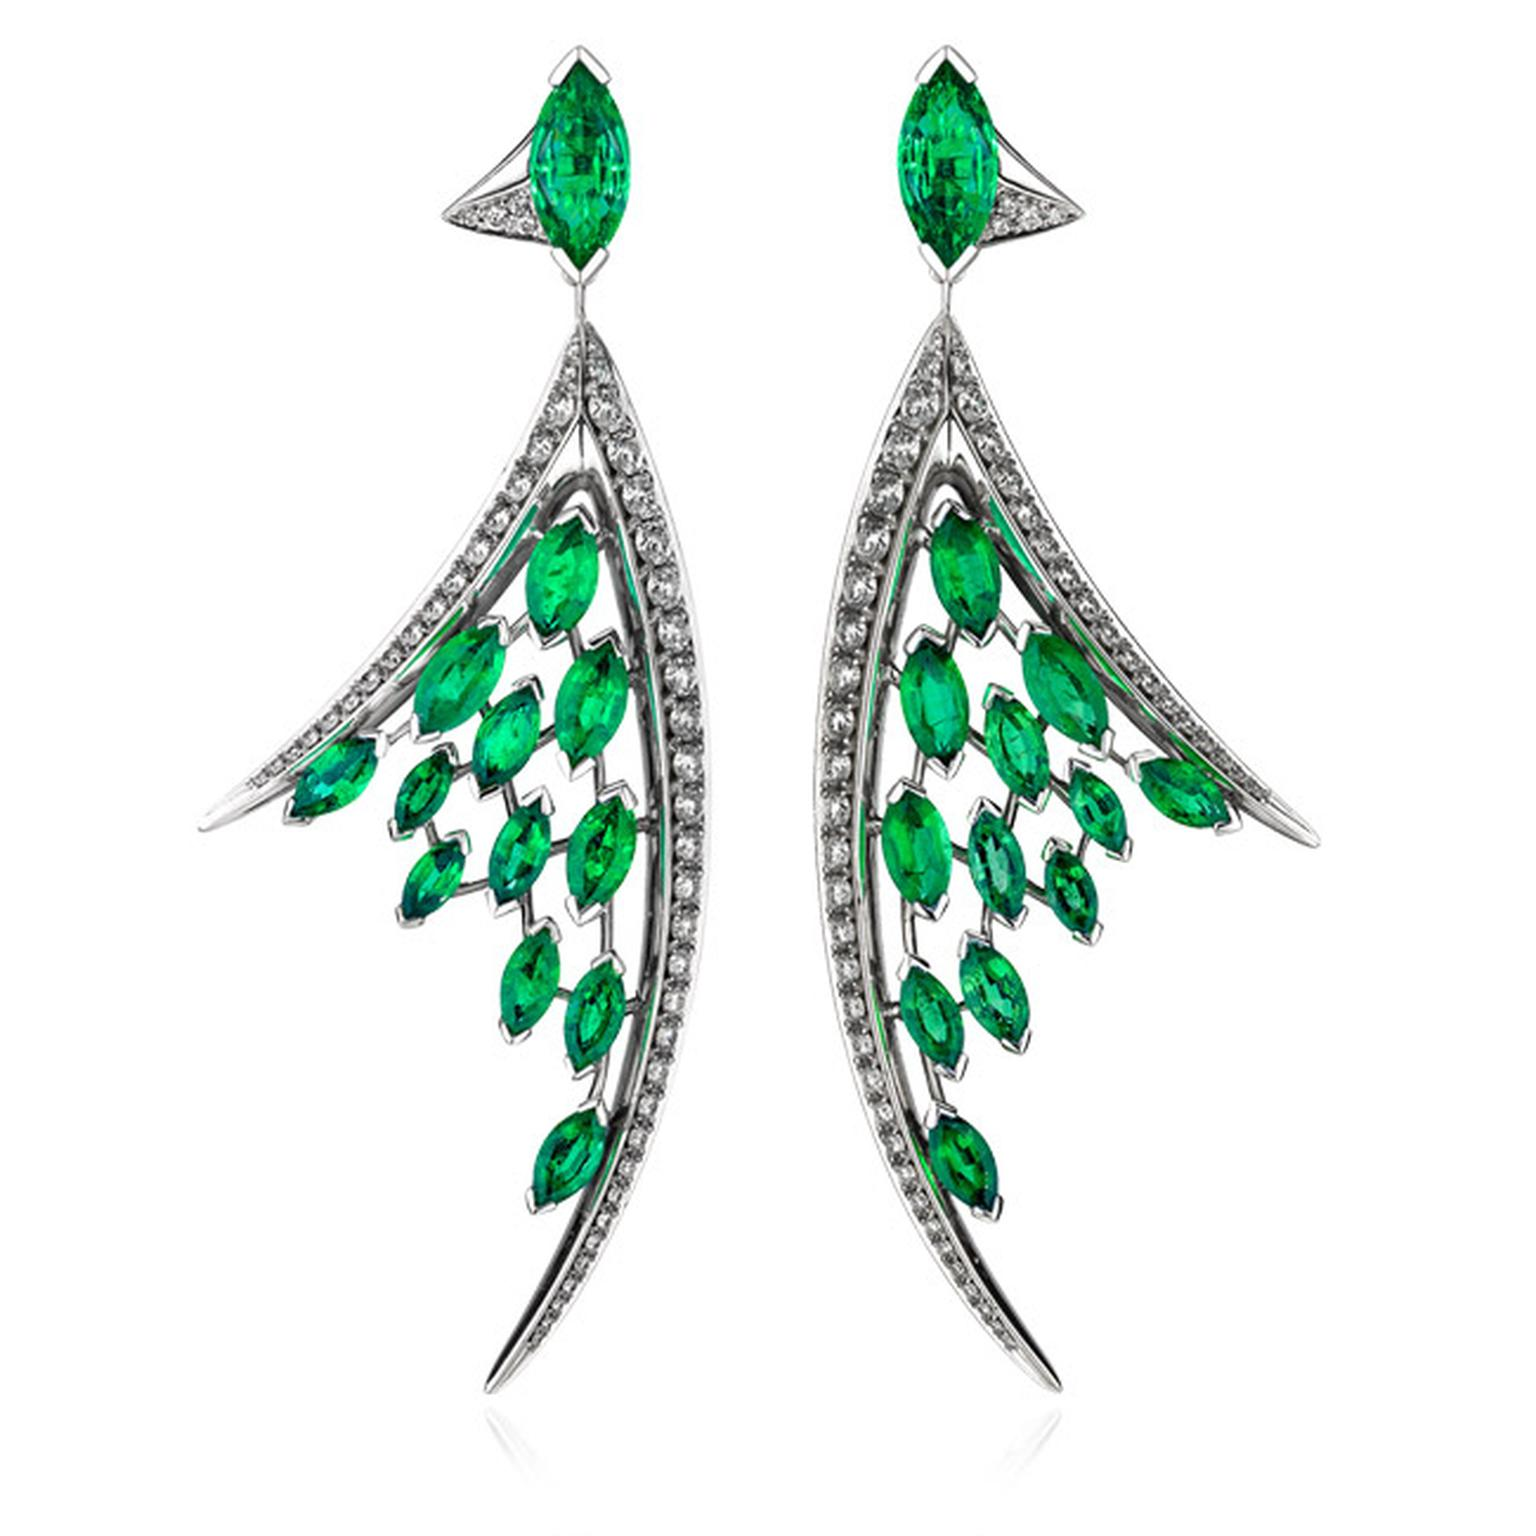 Shaun Leane's Aerial earrings feature two marquise-cut Gemfields' Zambian emeralds from which descend two fluid lines of white diamonds leaving a scattering of emeralds in their wake.